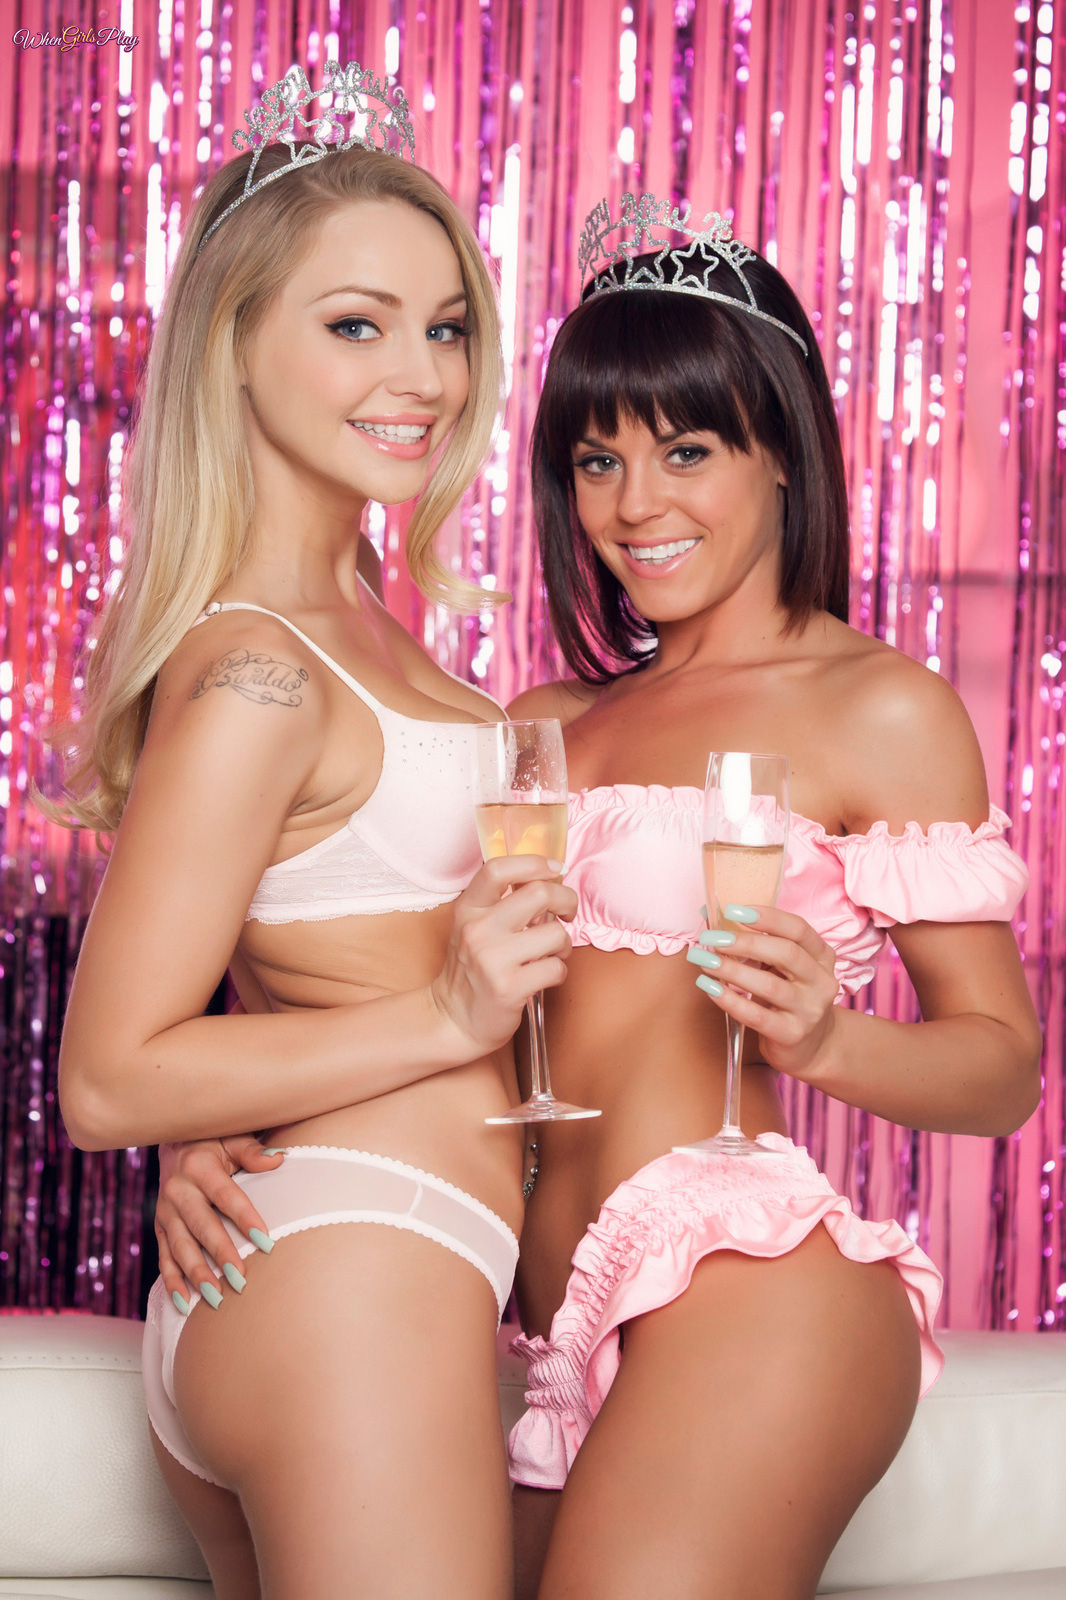 Ringing In The Pink.. featuring Rahyndee James, Staci Carr   Twistys.com